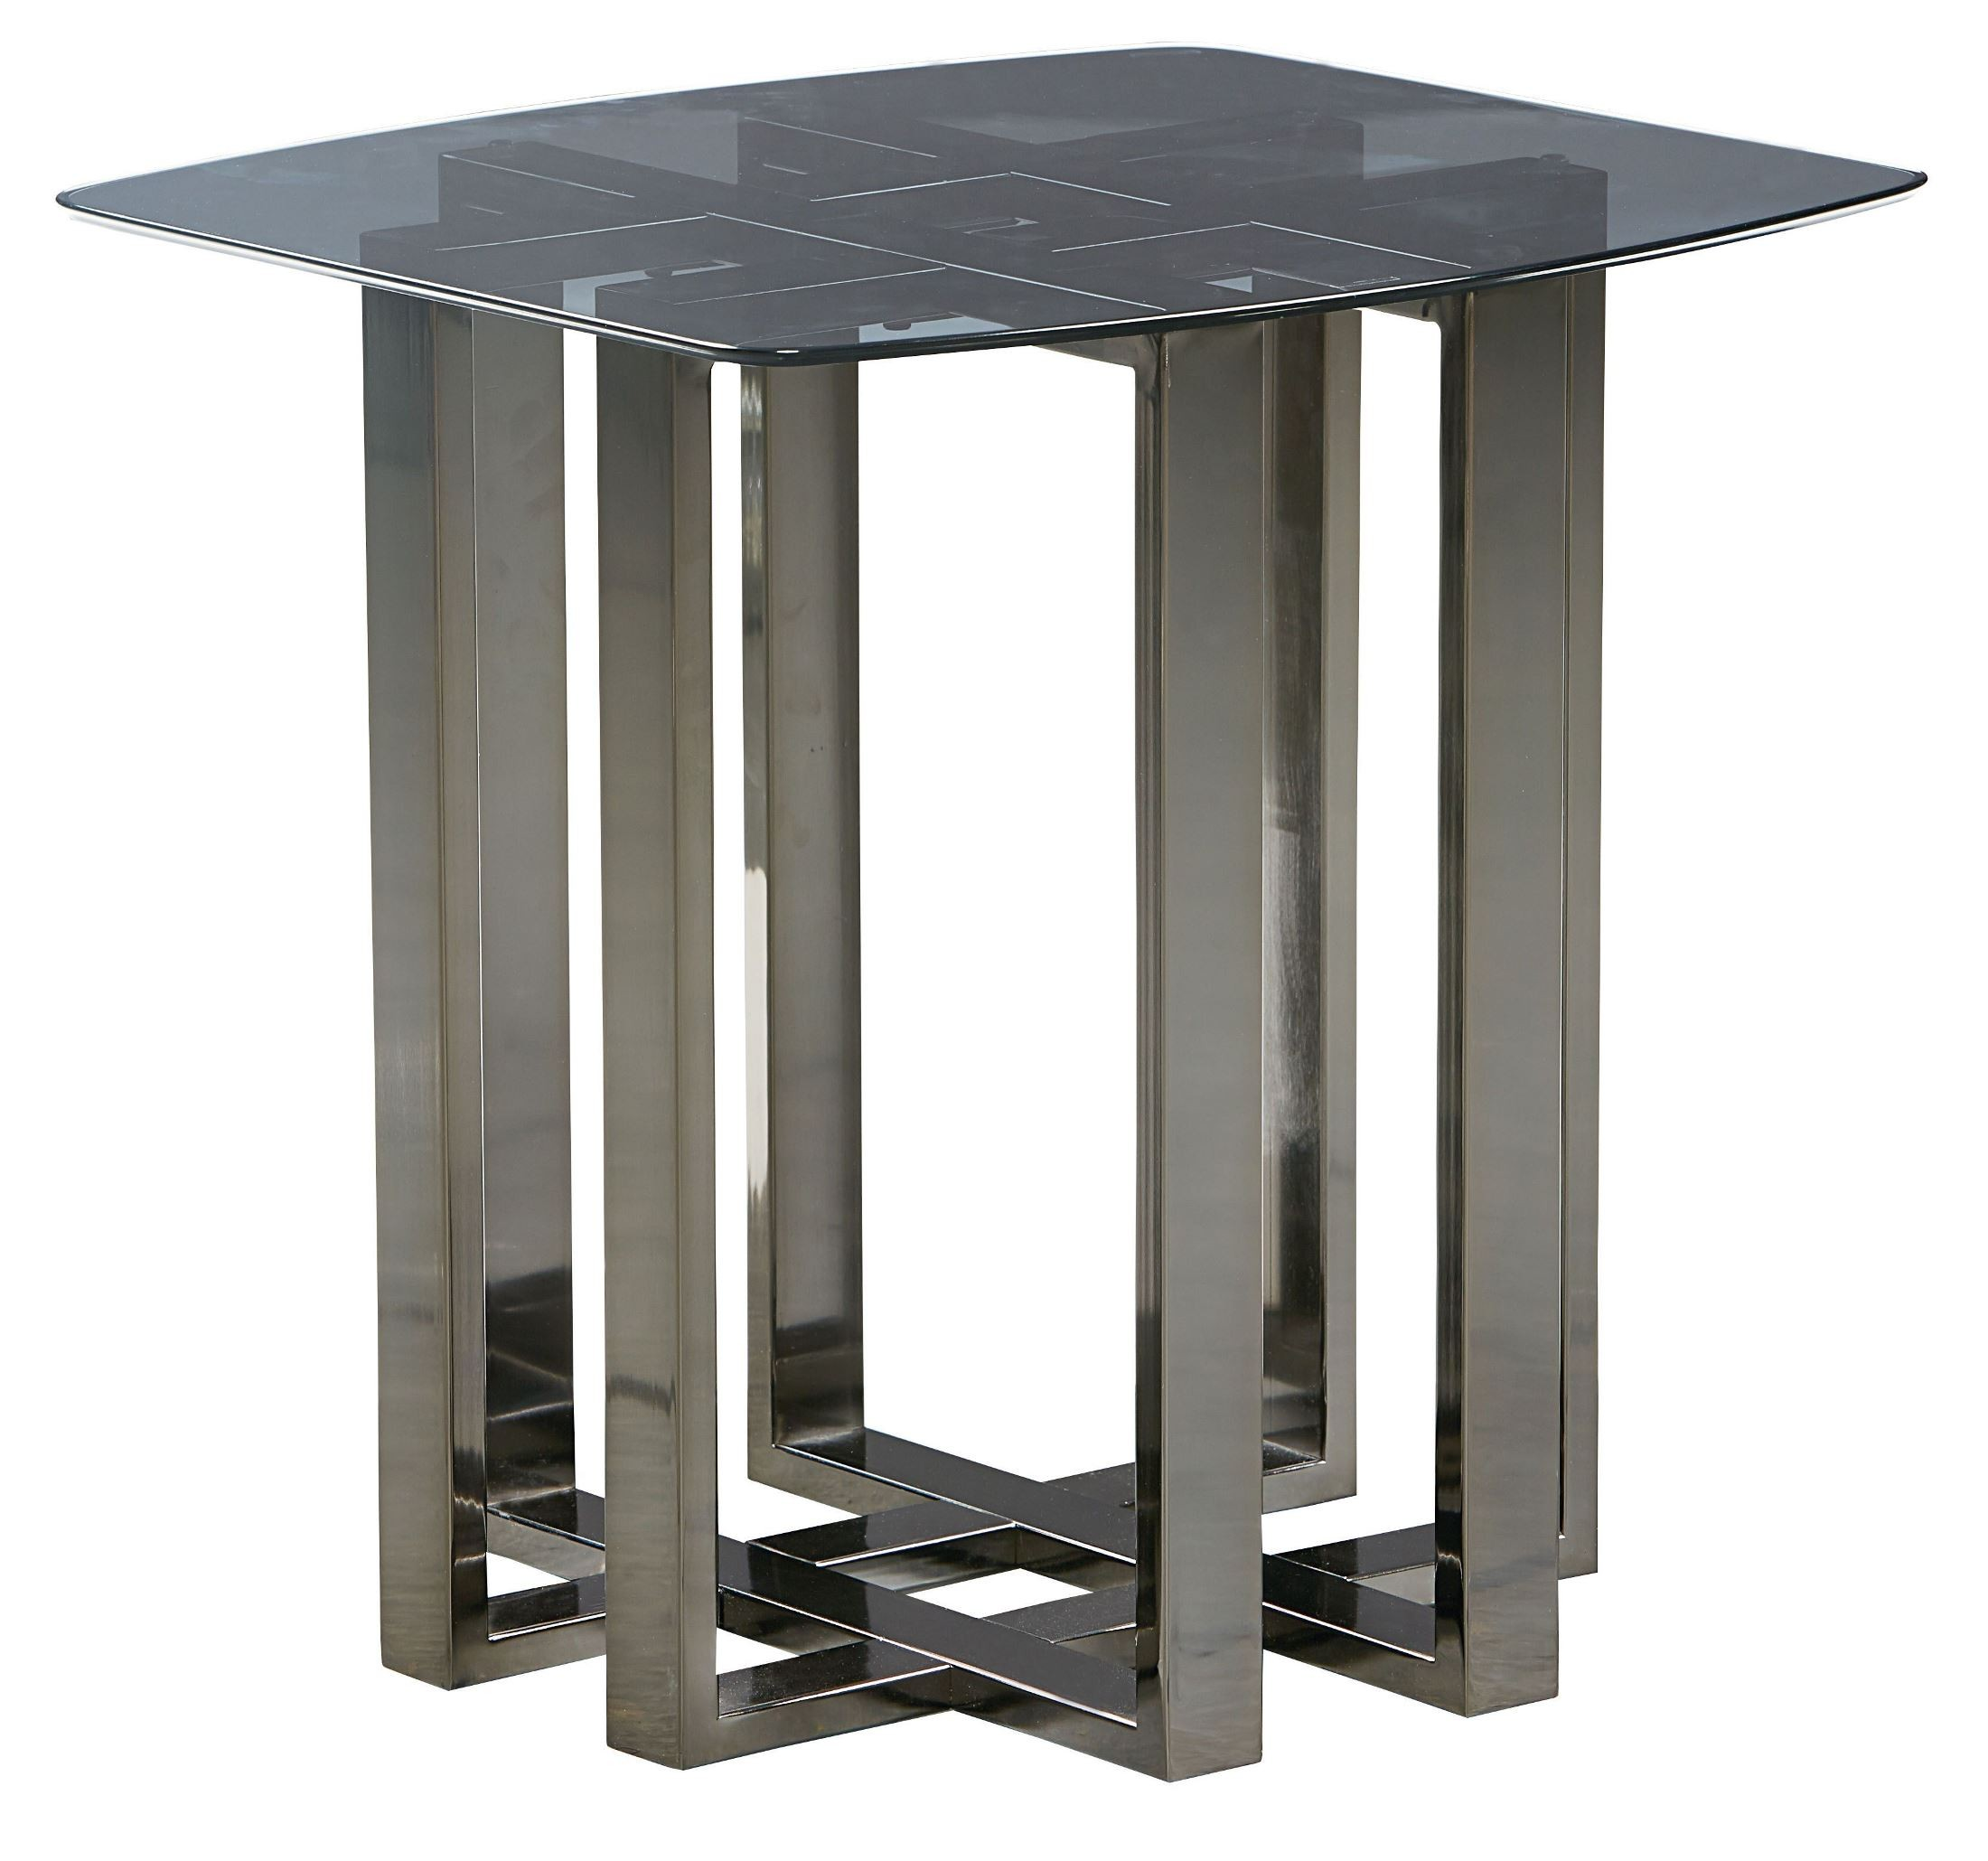 Hashtag Black Chrome Metal Glass Top End Table From Standard Furniture Coleman Furniture